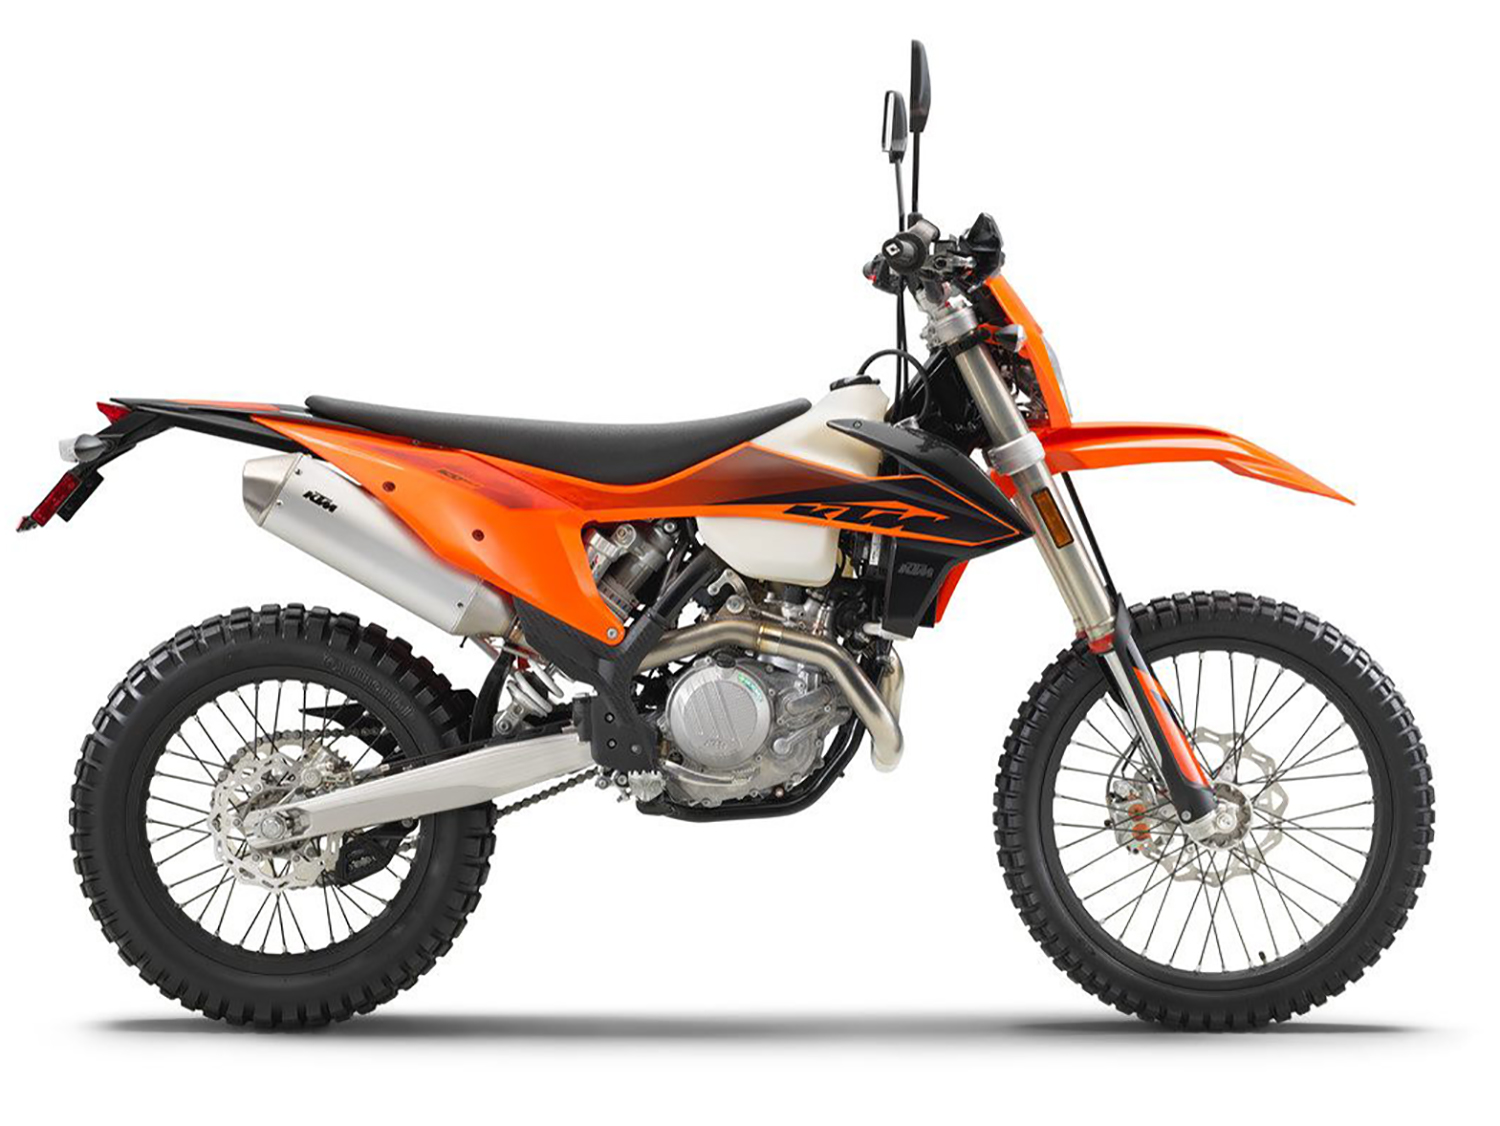 The Top 9 New Dirt Bikes We're Dying To Ride In 2020 | Dirt